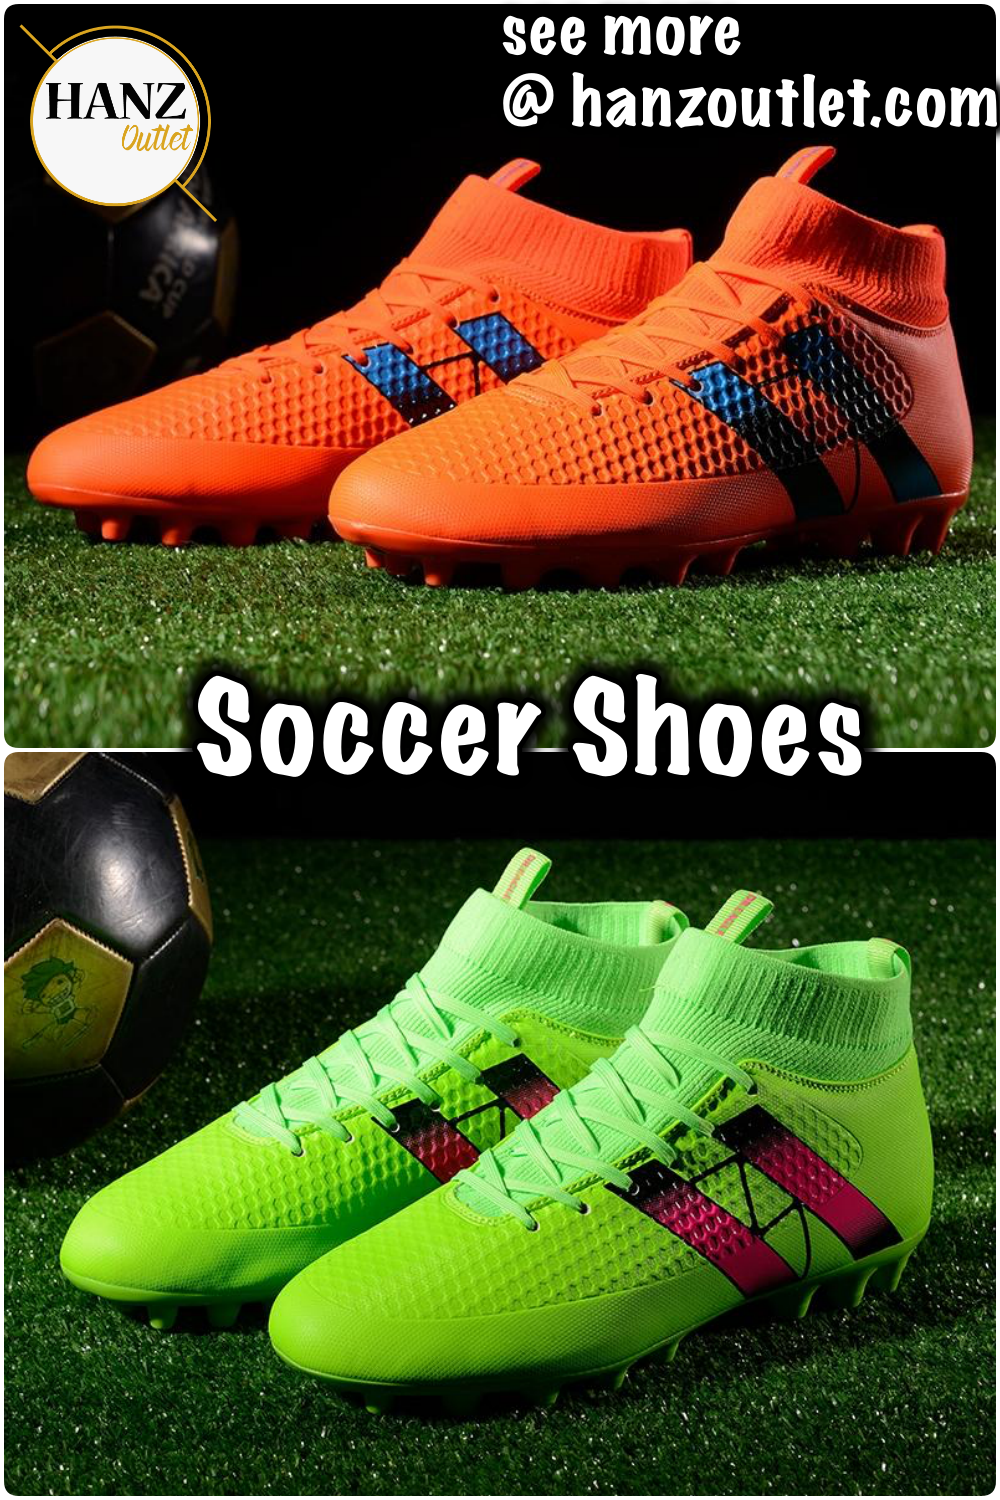 0dc40e265aa Spike soccer football shoes high ankle men crampon football boots superfly  original cleats football sneakers  Spikefootballshoes  soccershoes   footballshoes ...